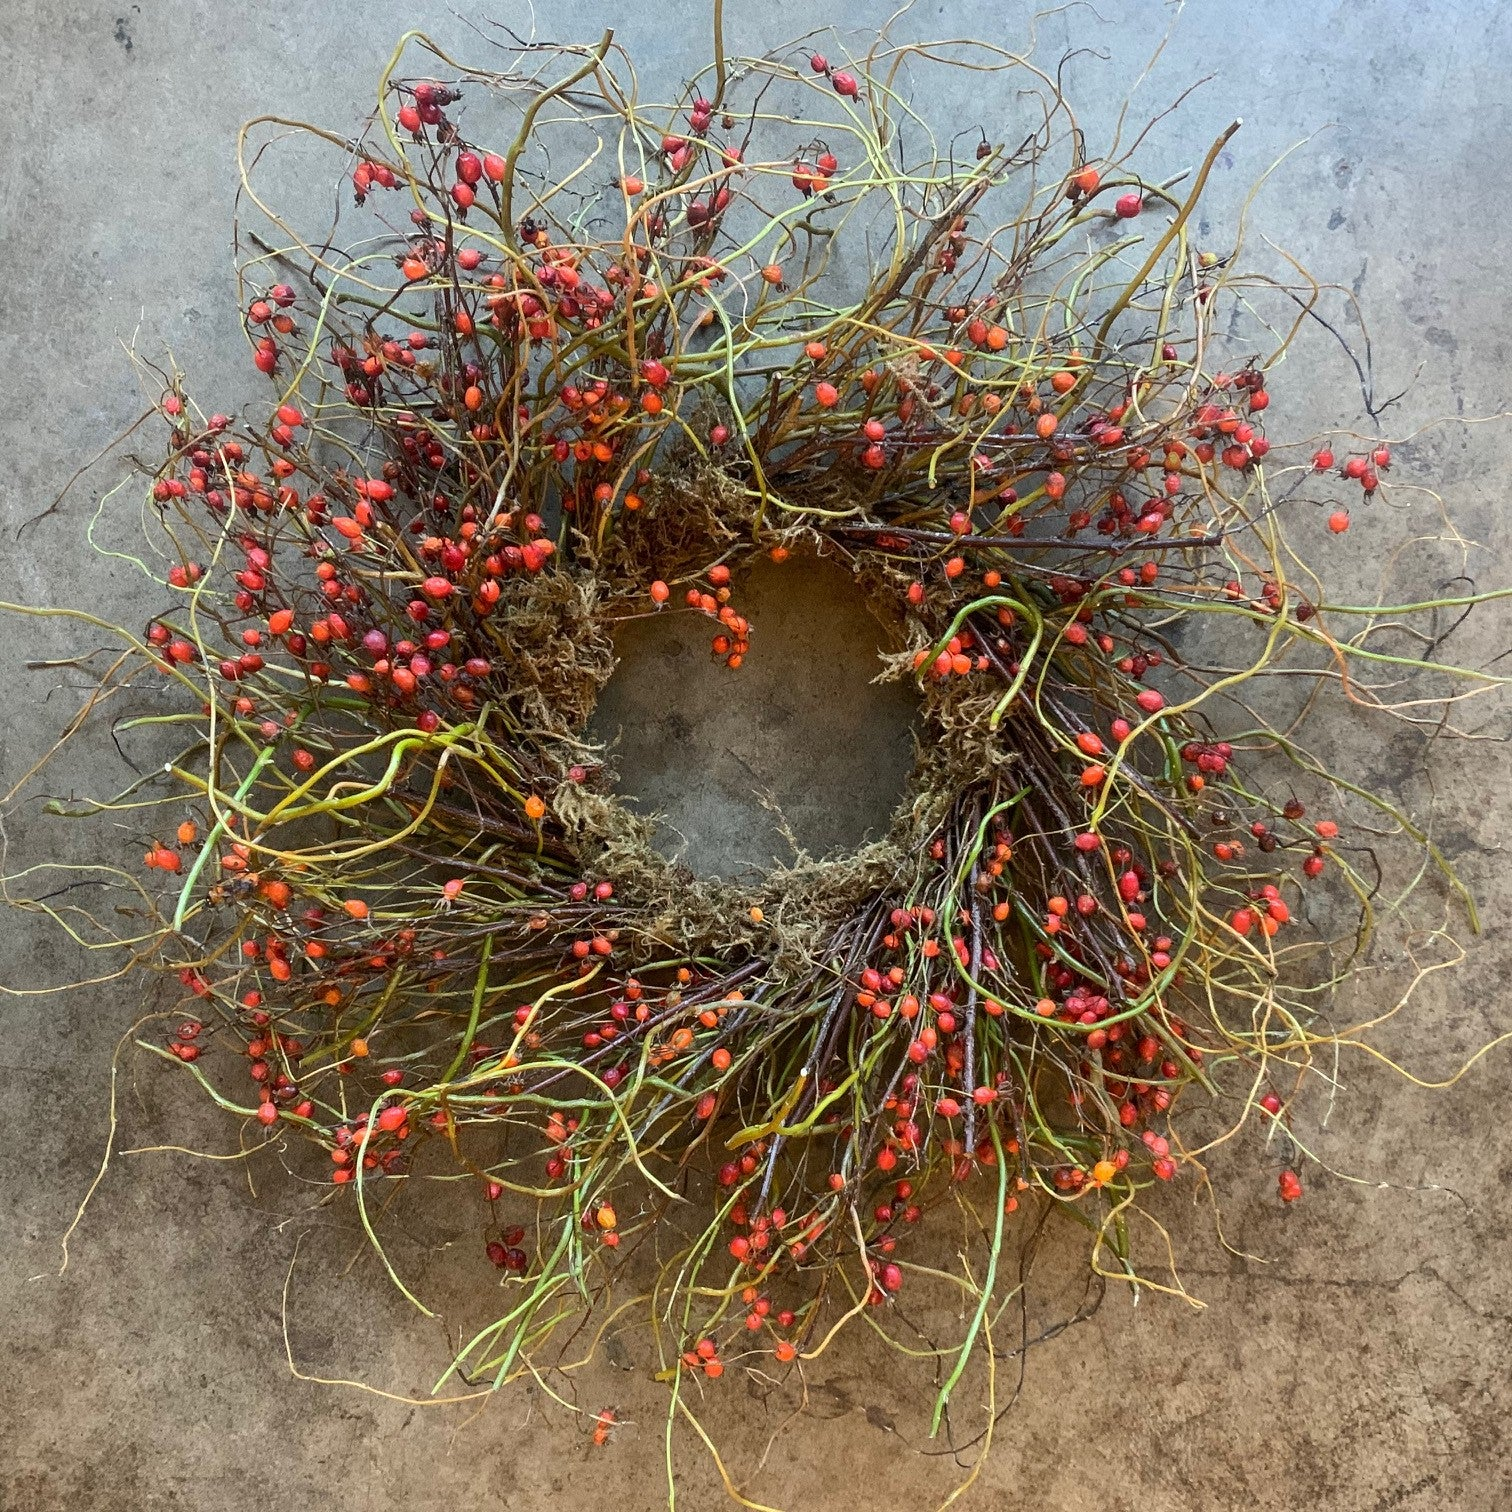 Autumnal Rose Hip & Willow Wreath - Daily floral delivery from Botanica Floral Design